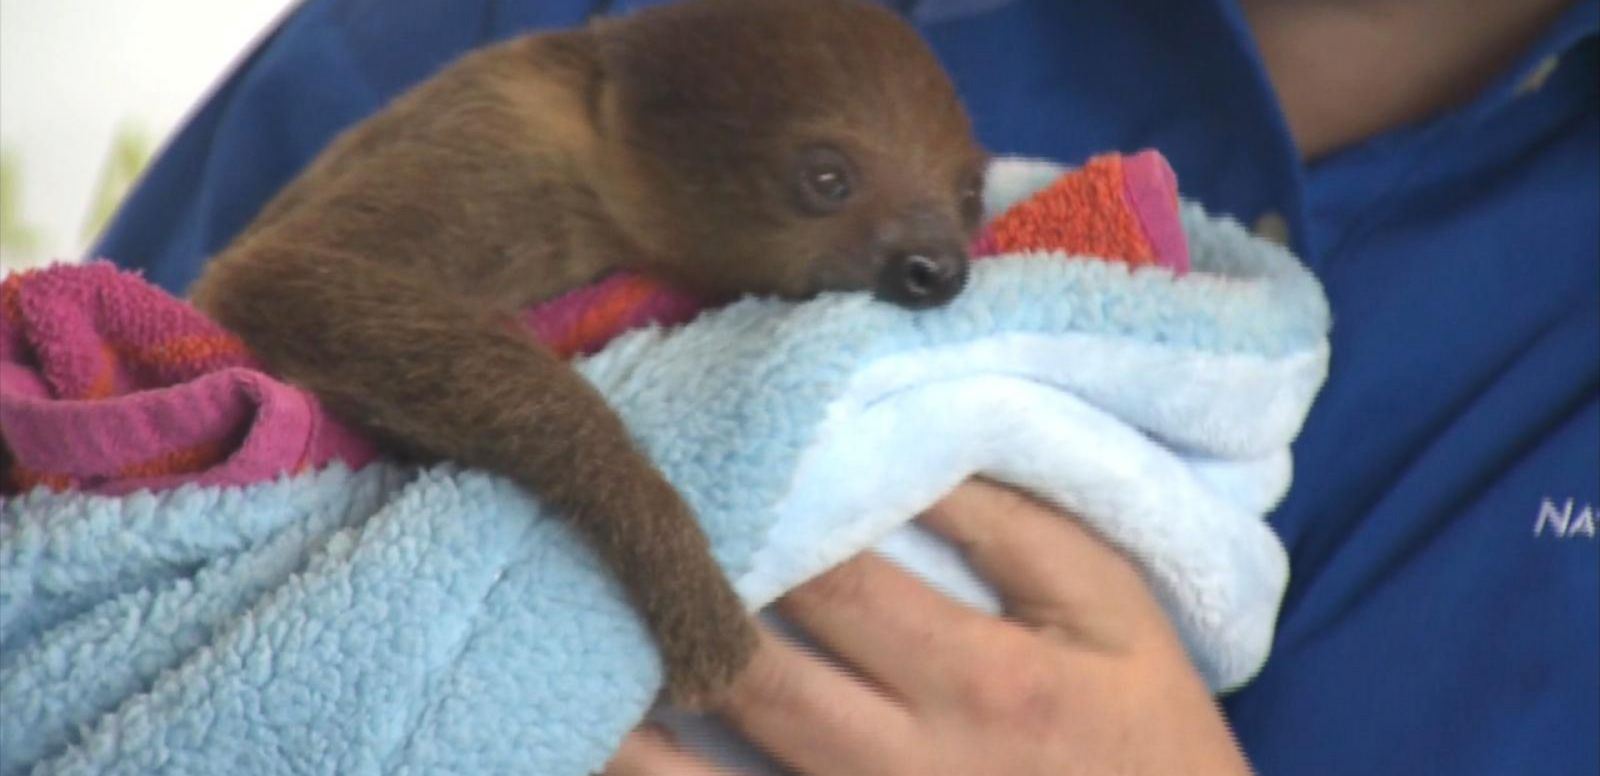 VIDEO: The adorable 3-month-old sloth joins the National Aviary in Pittsburgh.